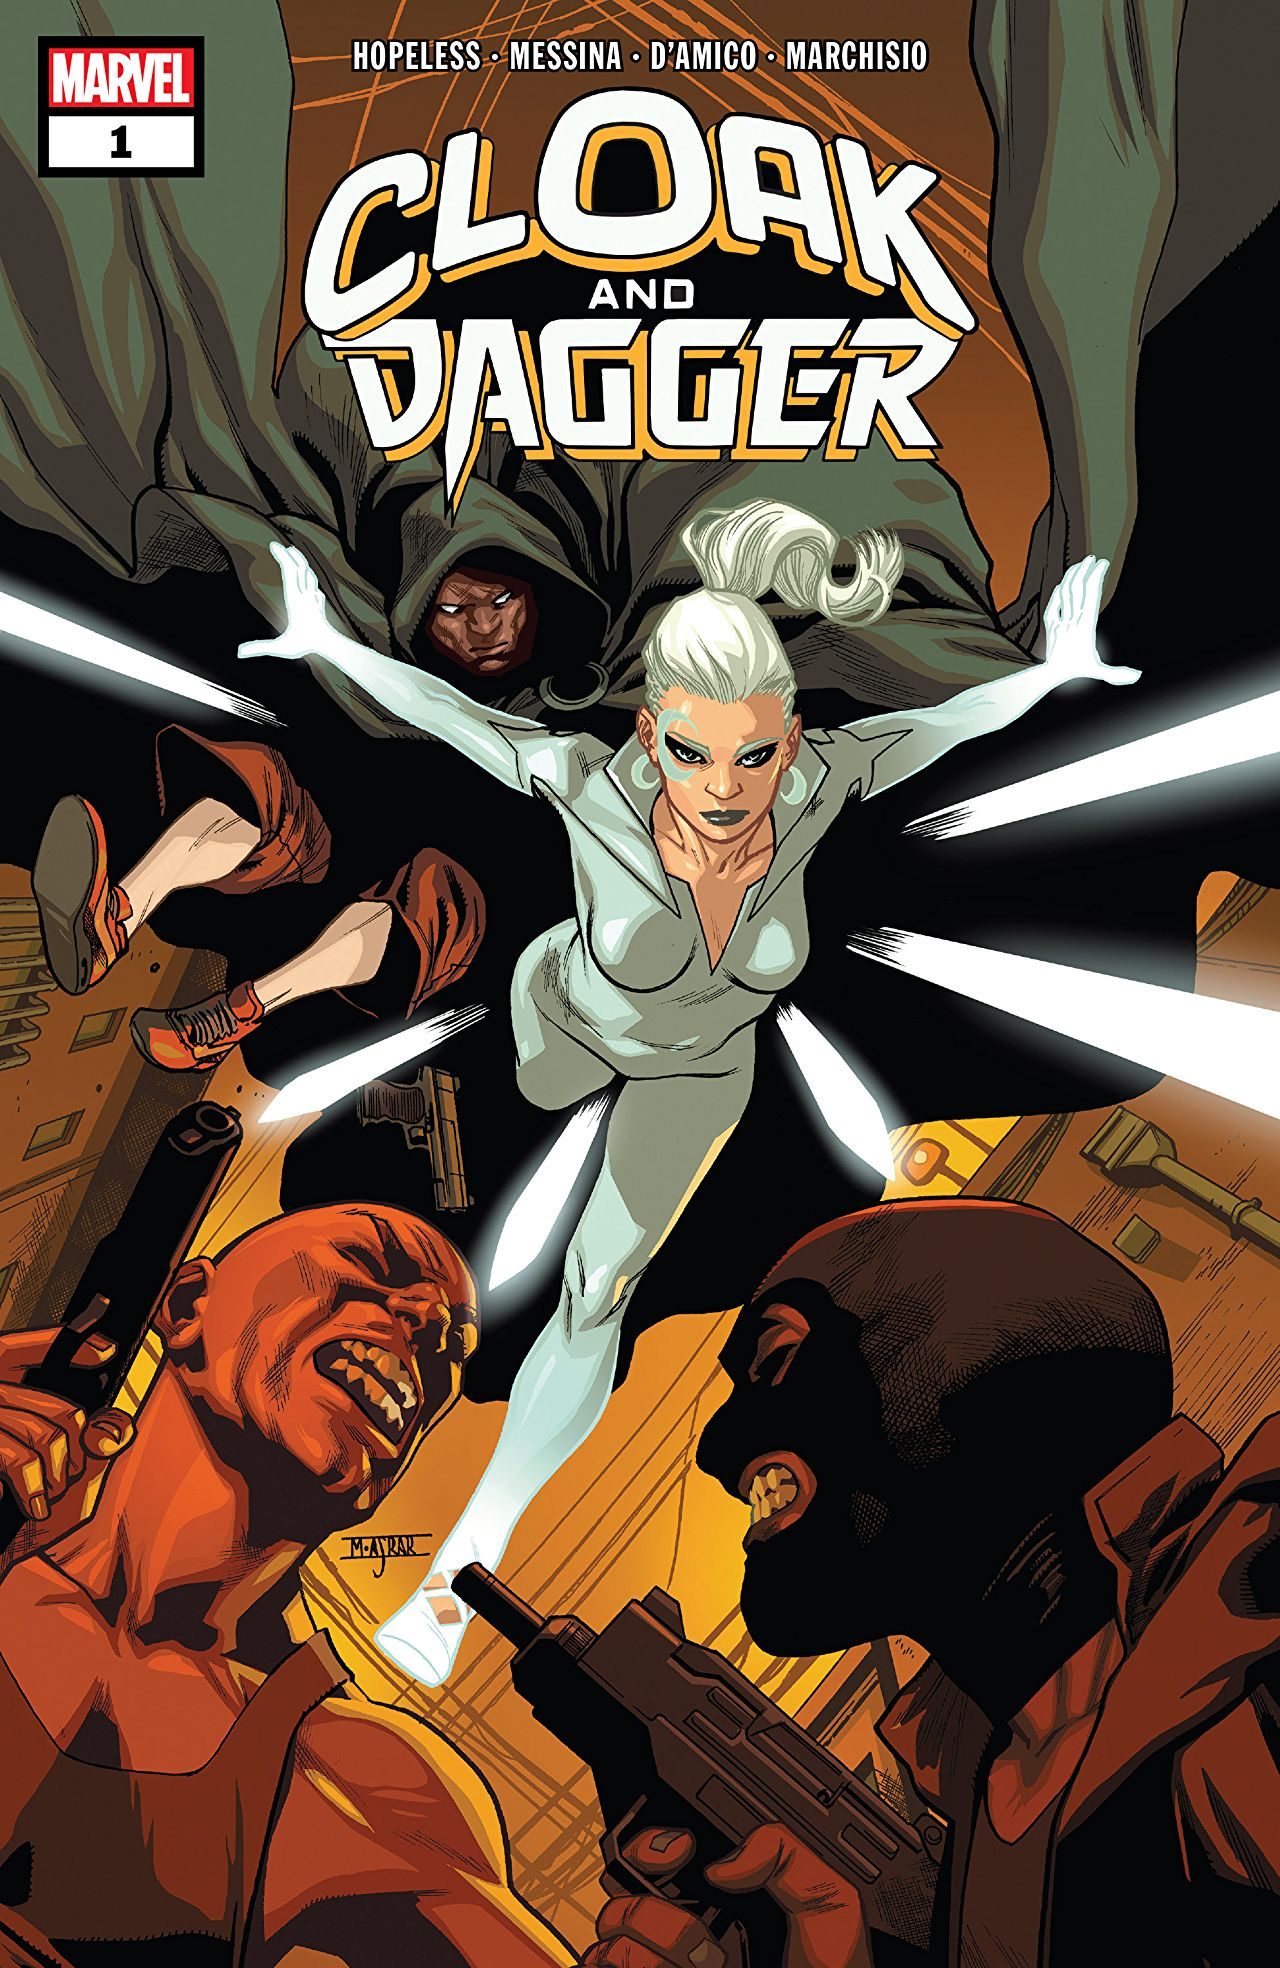 A new 'Cloak and Dagger' digital series is on the way from Dennis Hopeless [NYCC 2018]